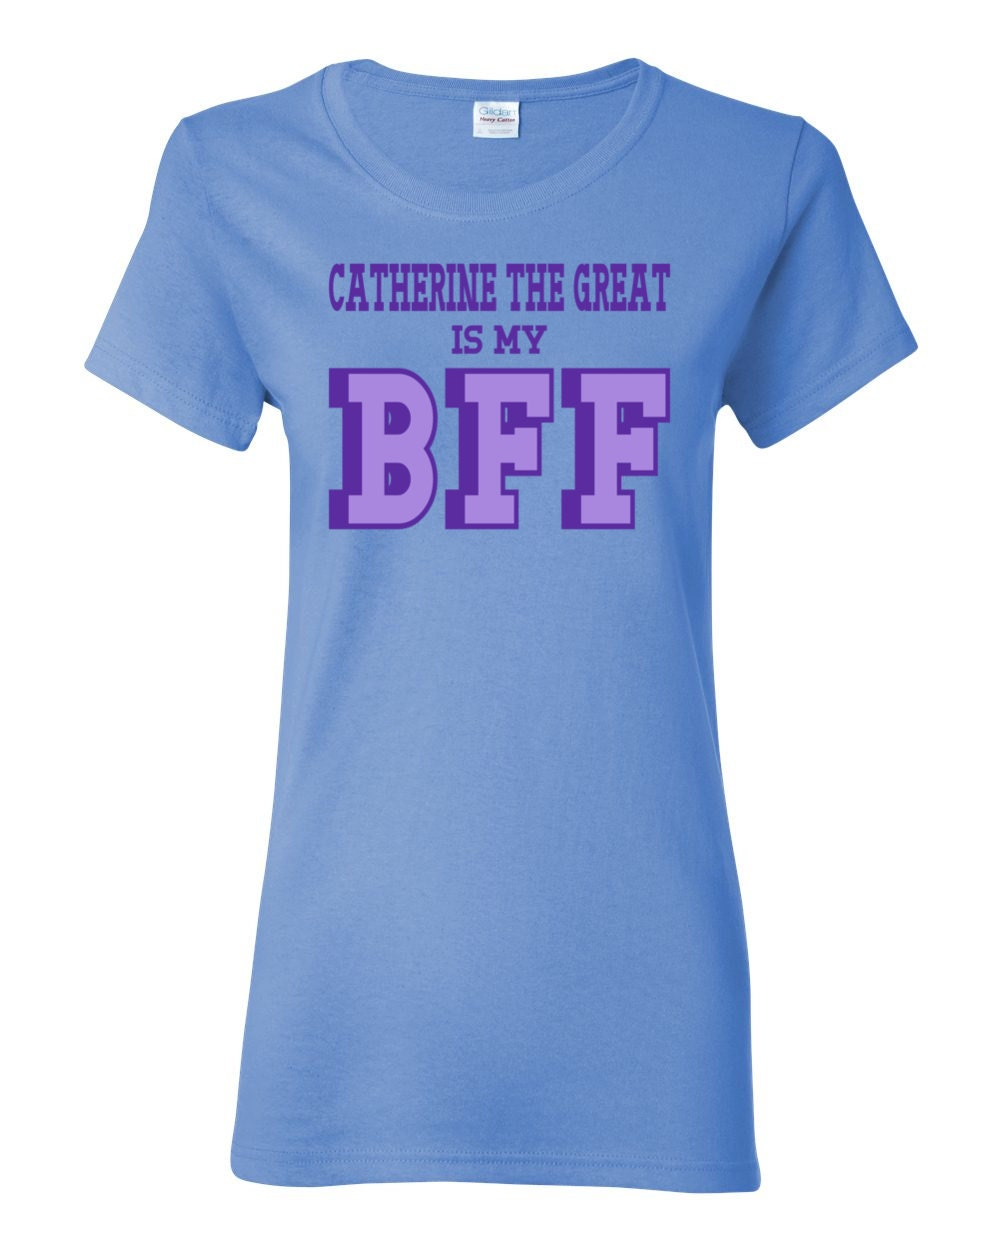 Great Women of History - Catherine the Great is my BFF Womens History T-shirt